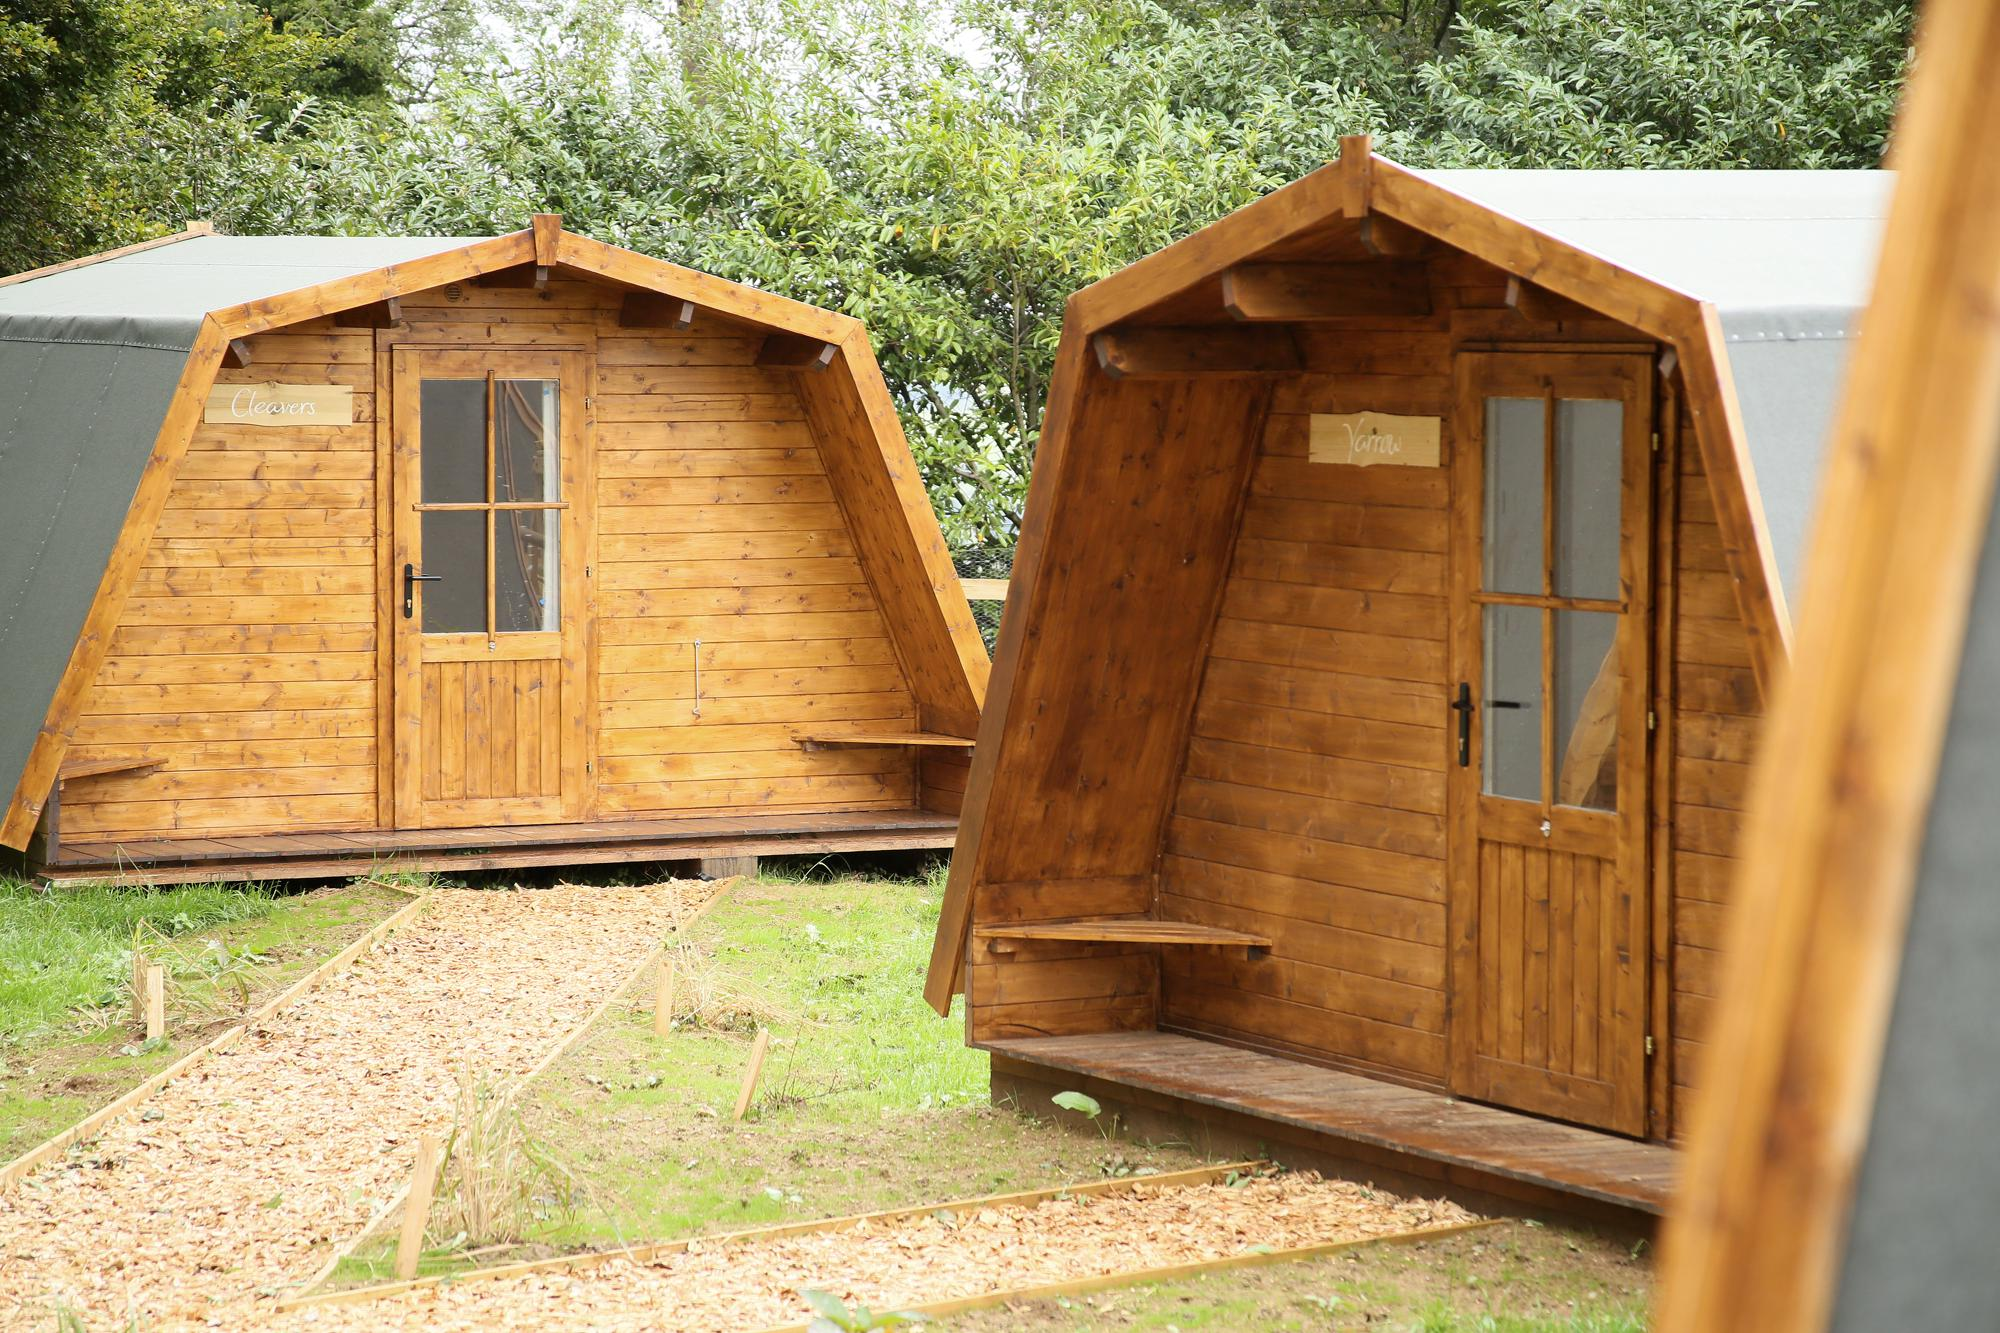 Glamping in South West England holidays at I Love This Campsite